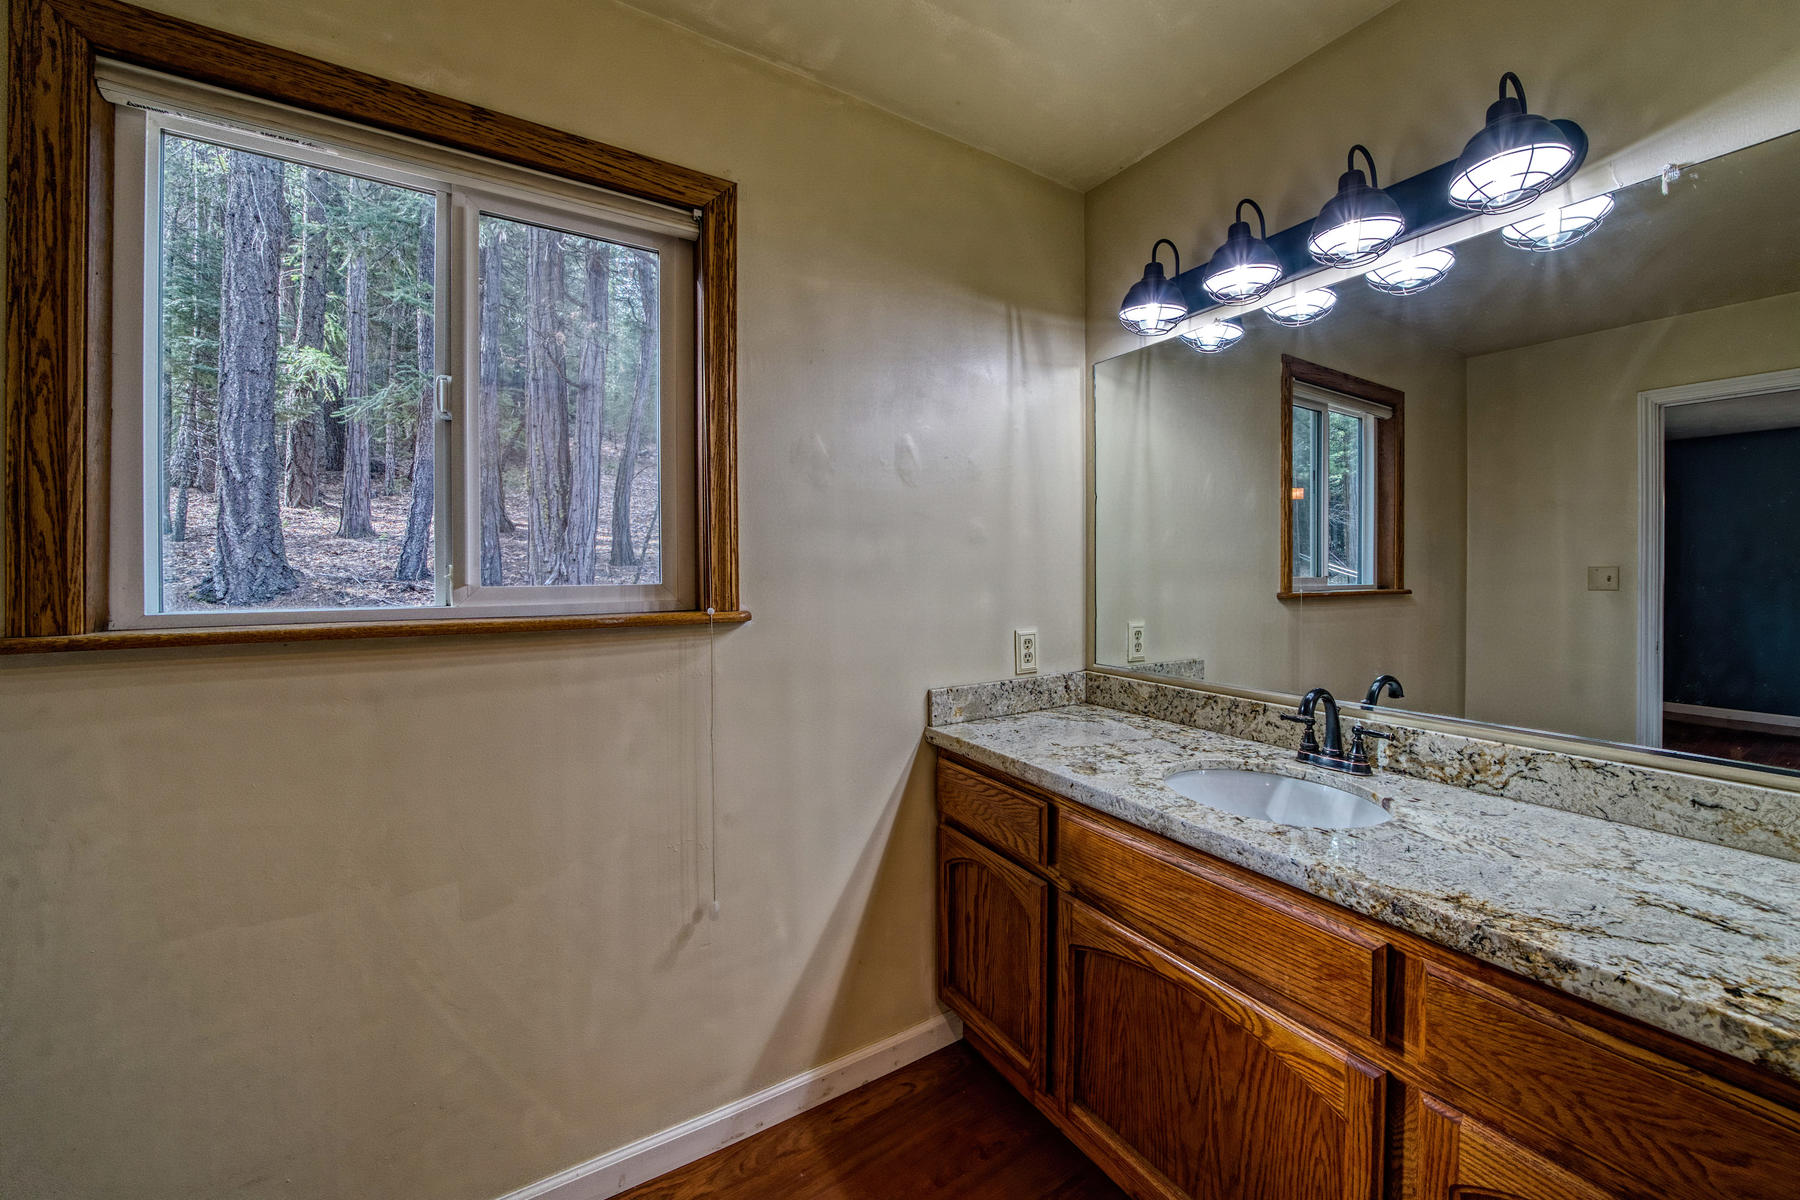 Additional photo for property listing at 570 Red Knoll Road Greenville California 95947 570 Red Knoll Road Greenville, California 95947 United States